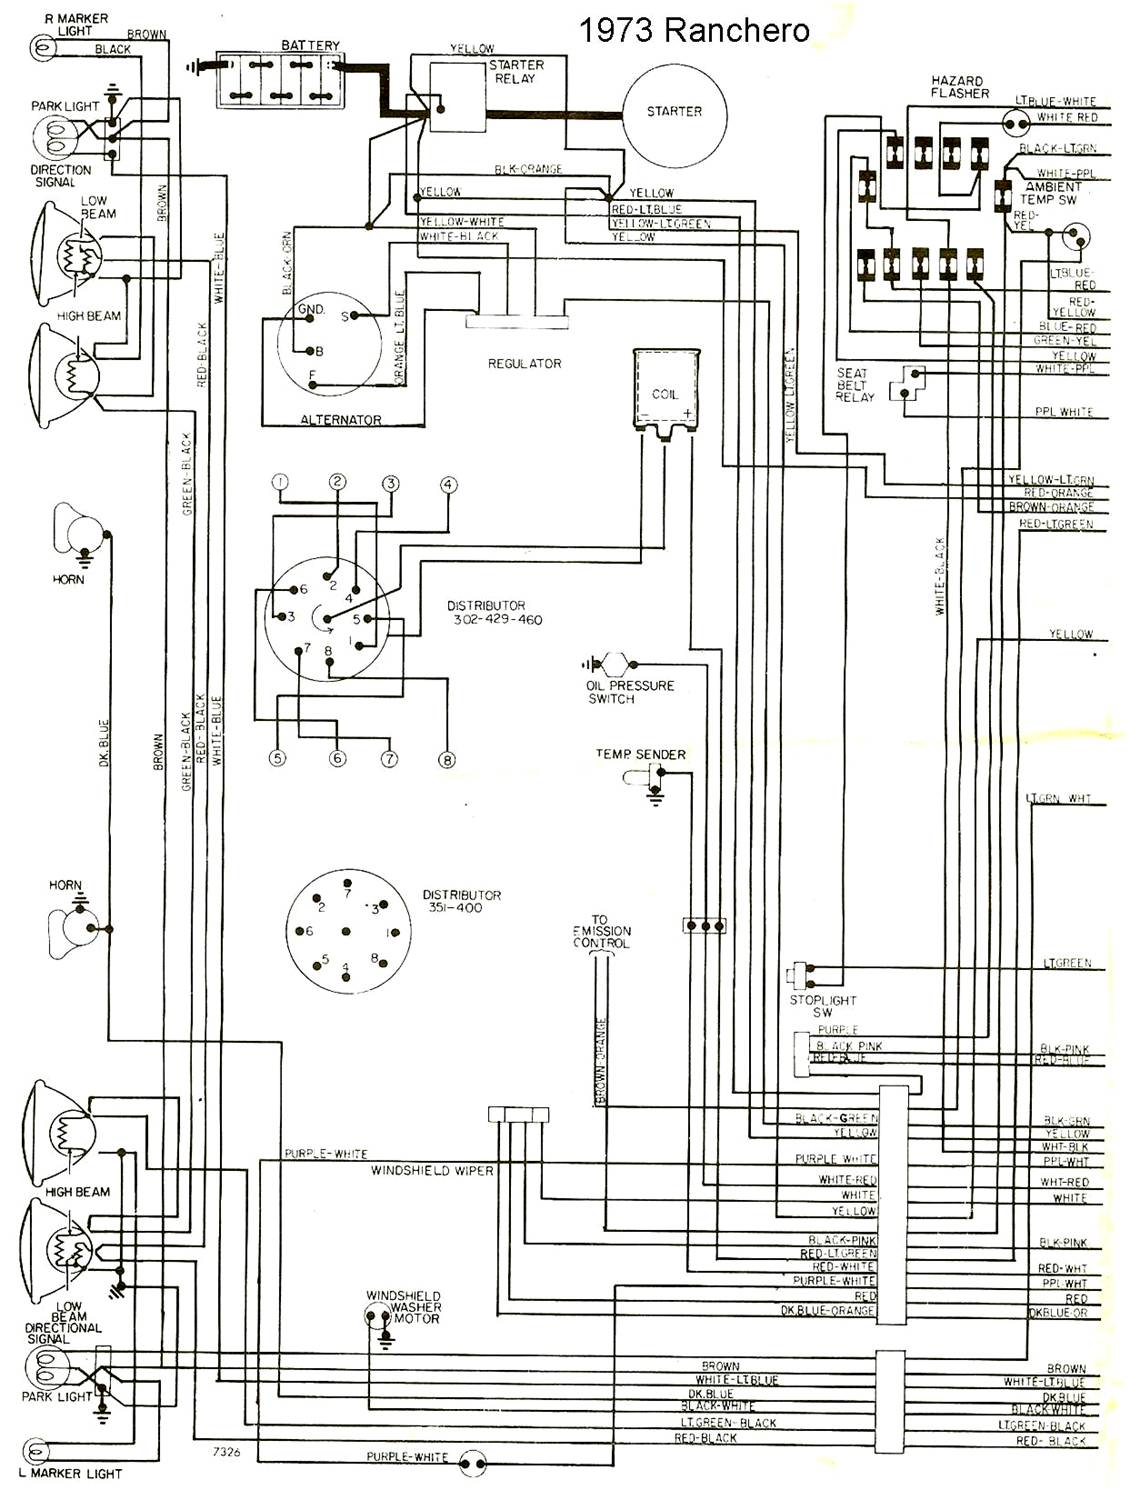 Ranchero Wiring Diagram